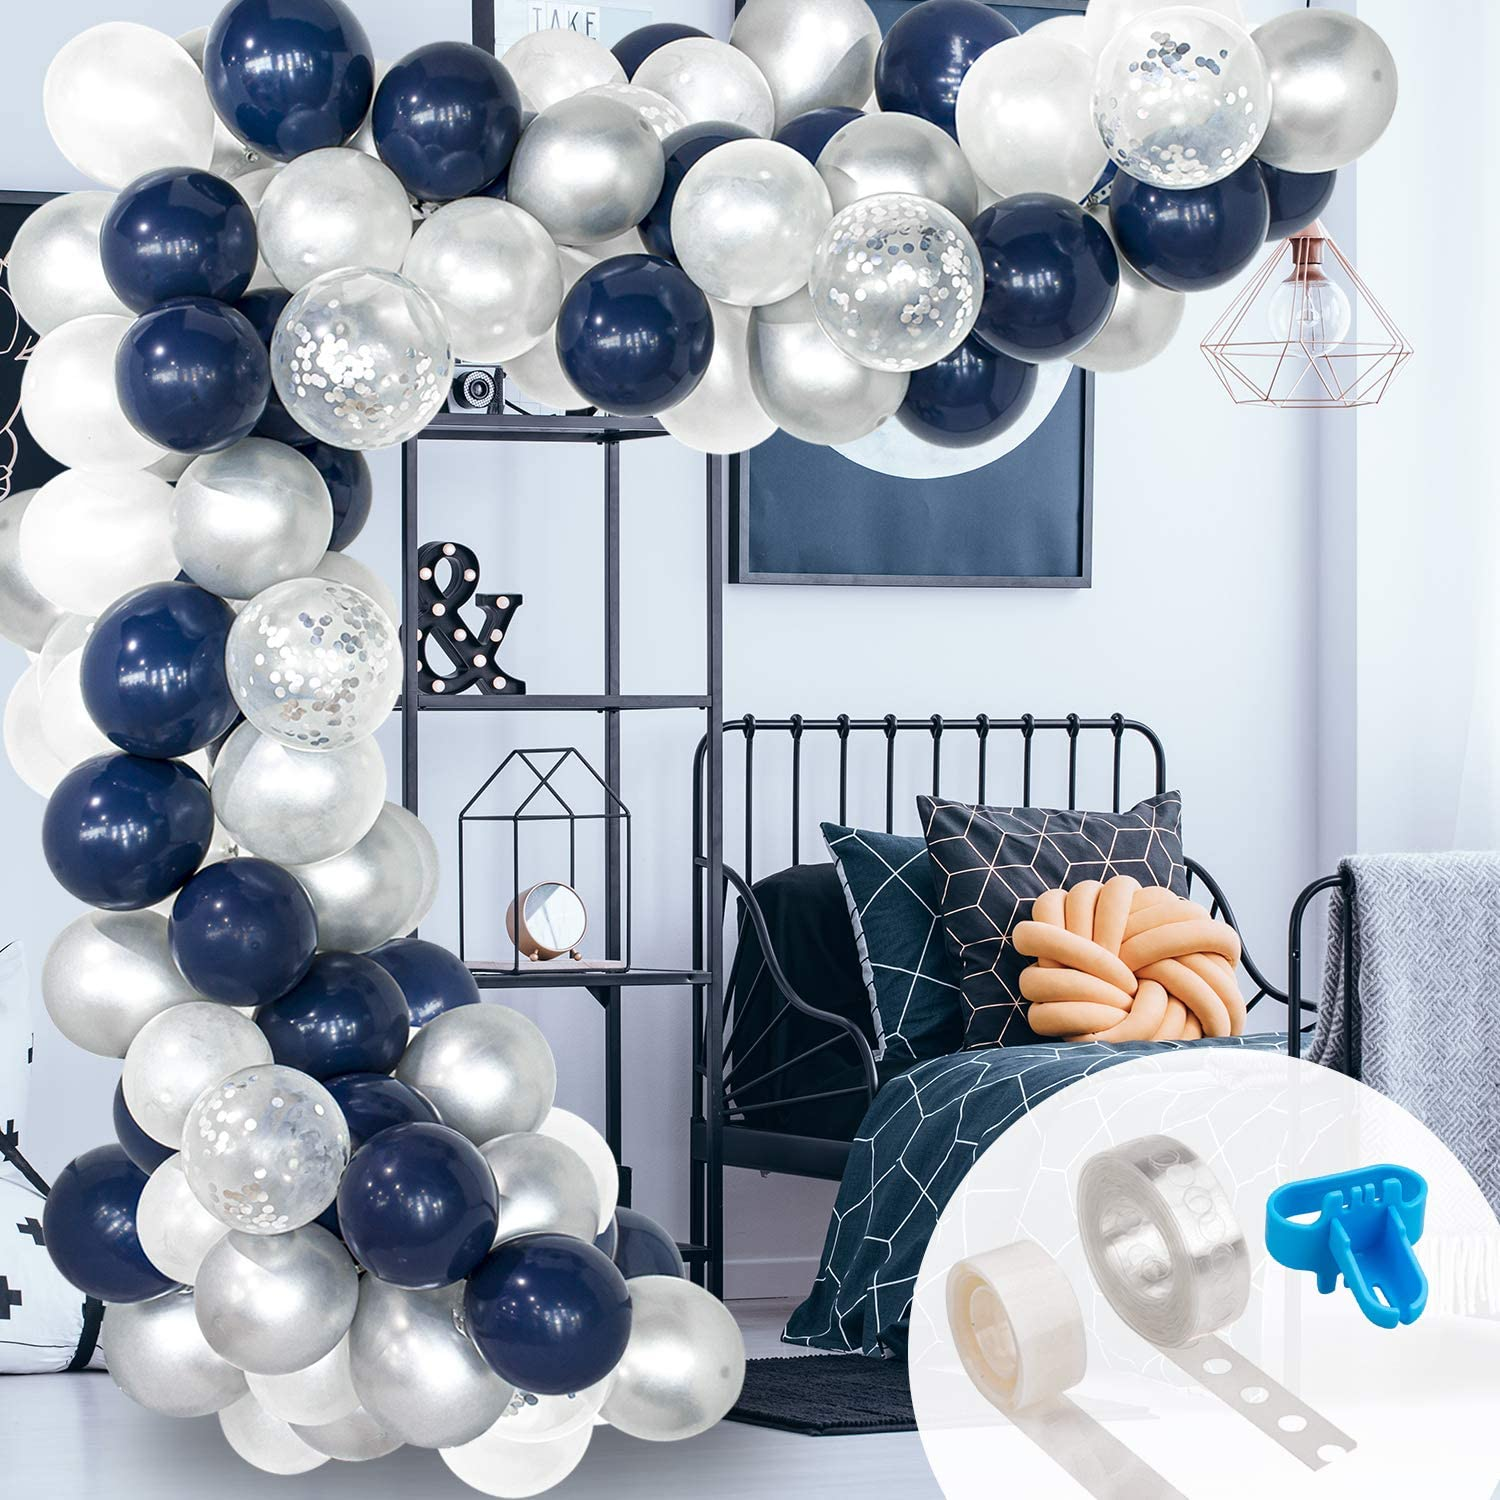 Dot Glue for Wedding Birthday Graduation Party Supplies Blue Silver White Balloon Garland Kit,120pcs Royal Blue and Silver Metallic Balloons Arch Kit with Strip Tape